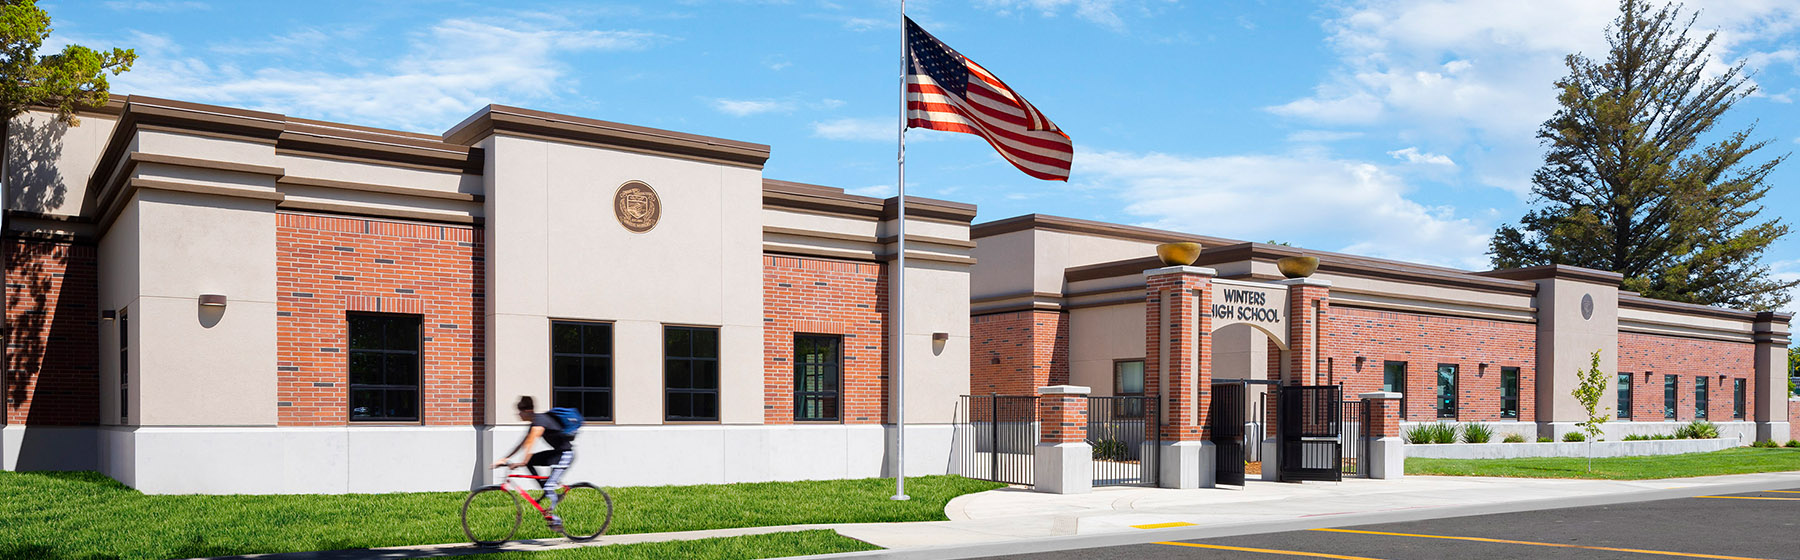 Winters High School Receives New Administration Building